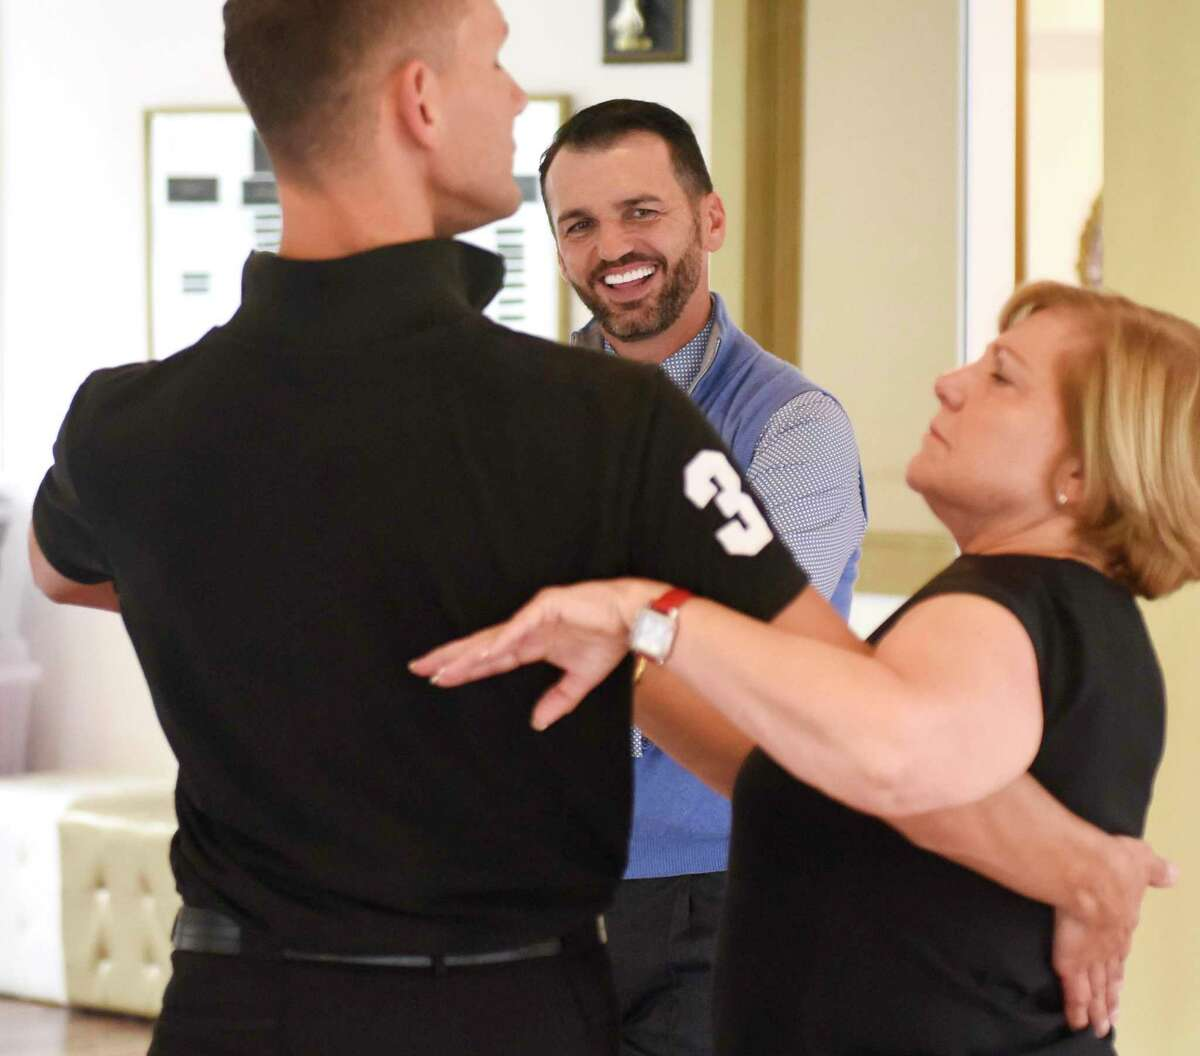 Dancing with the Stars champion Tony Dovolani watches as Astaire studio co-owner Clemens Lengenfelder and Greenwich resident Elaine Madonna practice their routine for the upcoming Dancing Stars of Greenwich charity dance-off gala for Abilis at Fred Astaire Dance Studio in Greenwich, Conn. Tuesday, Sept. 10, 2019. Dancing with the Stars champion Tony Dovolani was on hand to help dancers with their choreography during Tuesday's practice session. The Dancing Stars of Greenwich event will be held at Tamarack Country Club on Saturday, Sept. 14 at 7 p.m. to benefit local special needs nonprofit Abilis. The event pairs local celebrities in choreographed dance routines with instructors from the Astaire studio to be judged by actor Brendan Fraser, news anchor Lara Spencer, and Dancing with the Stars champion Tony Dovolani.